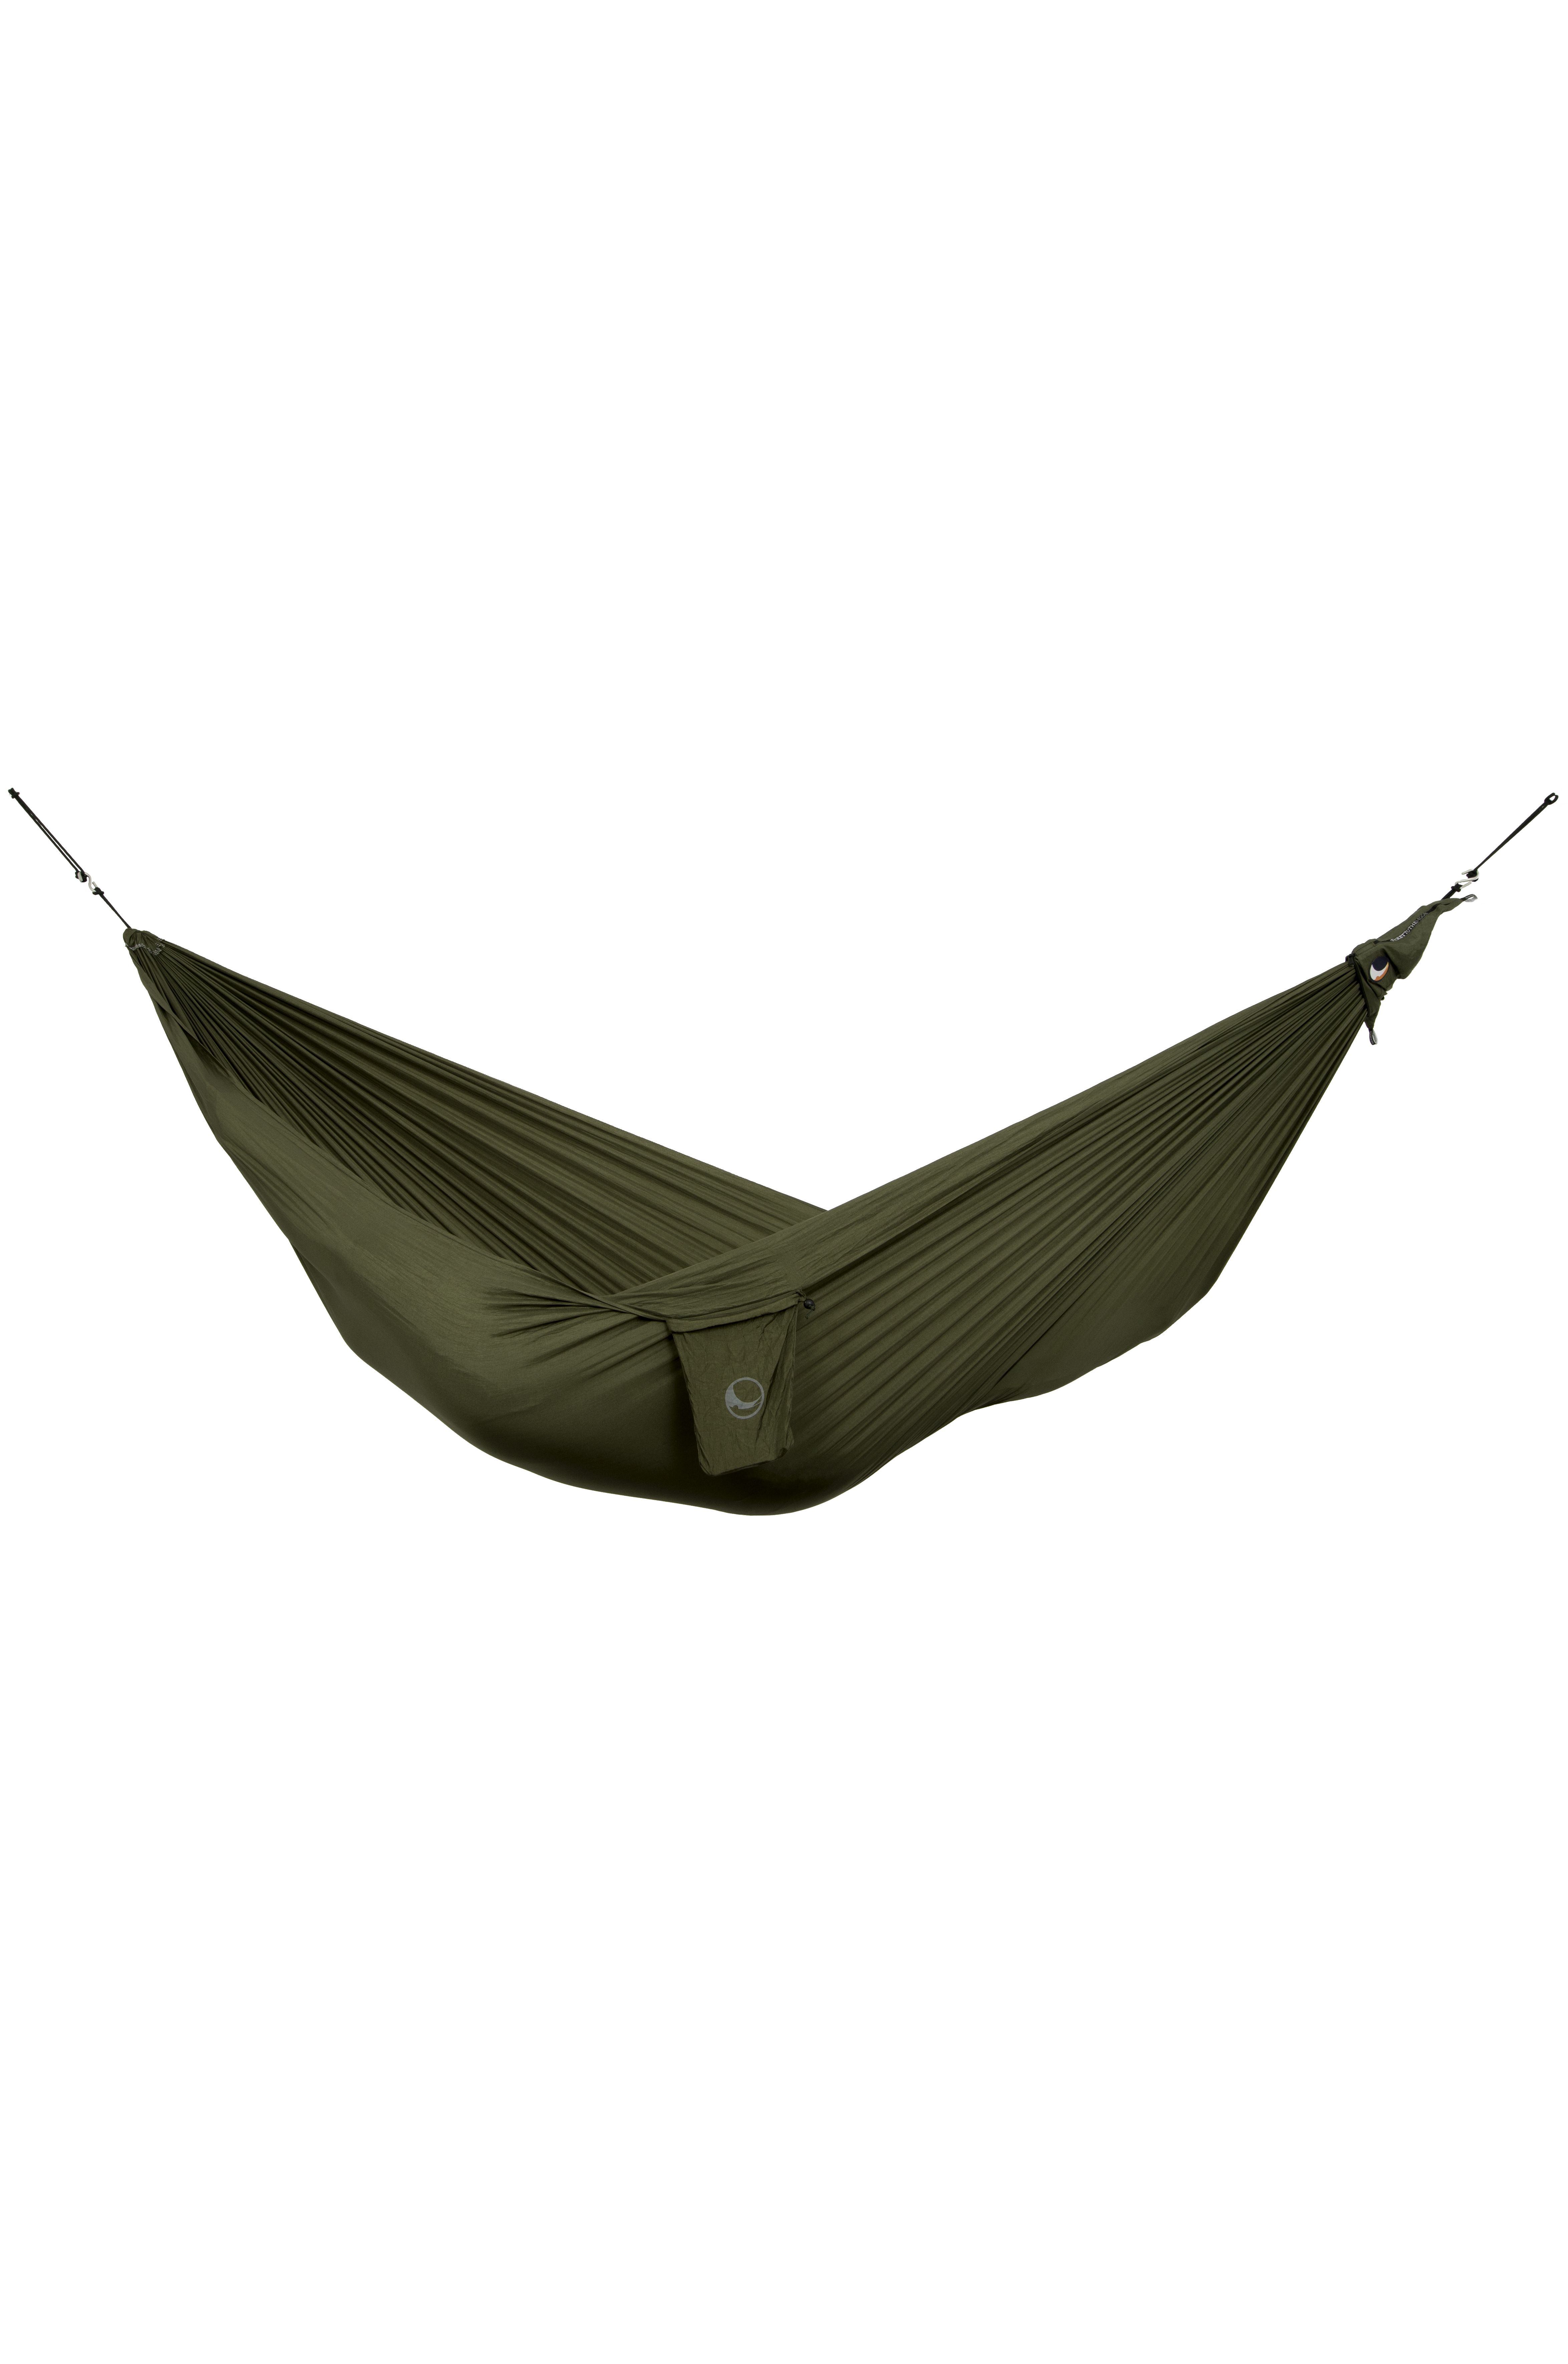 DV Ticket To The Moon COMPACT HAMMOCK Army Green